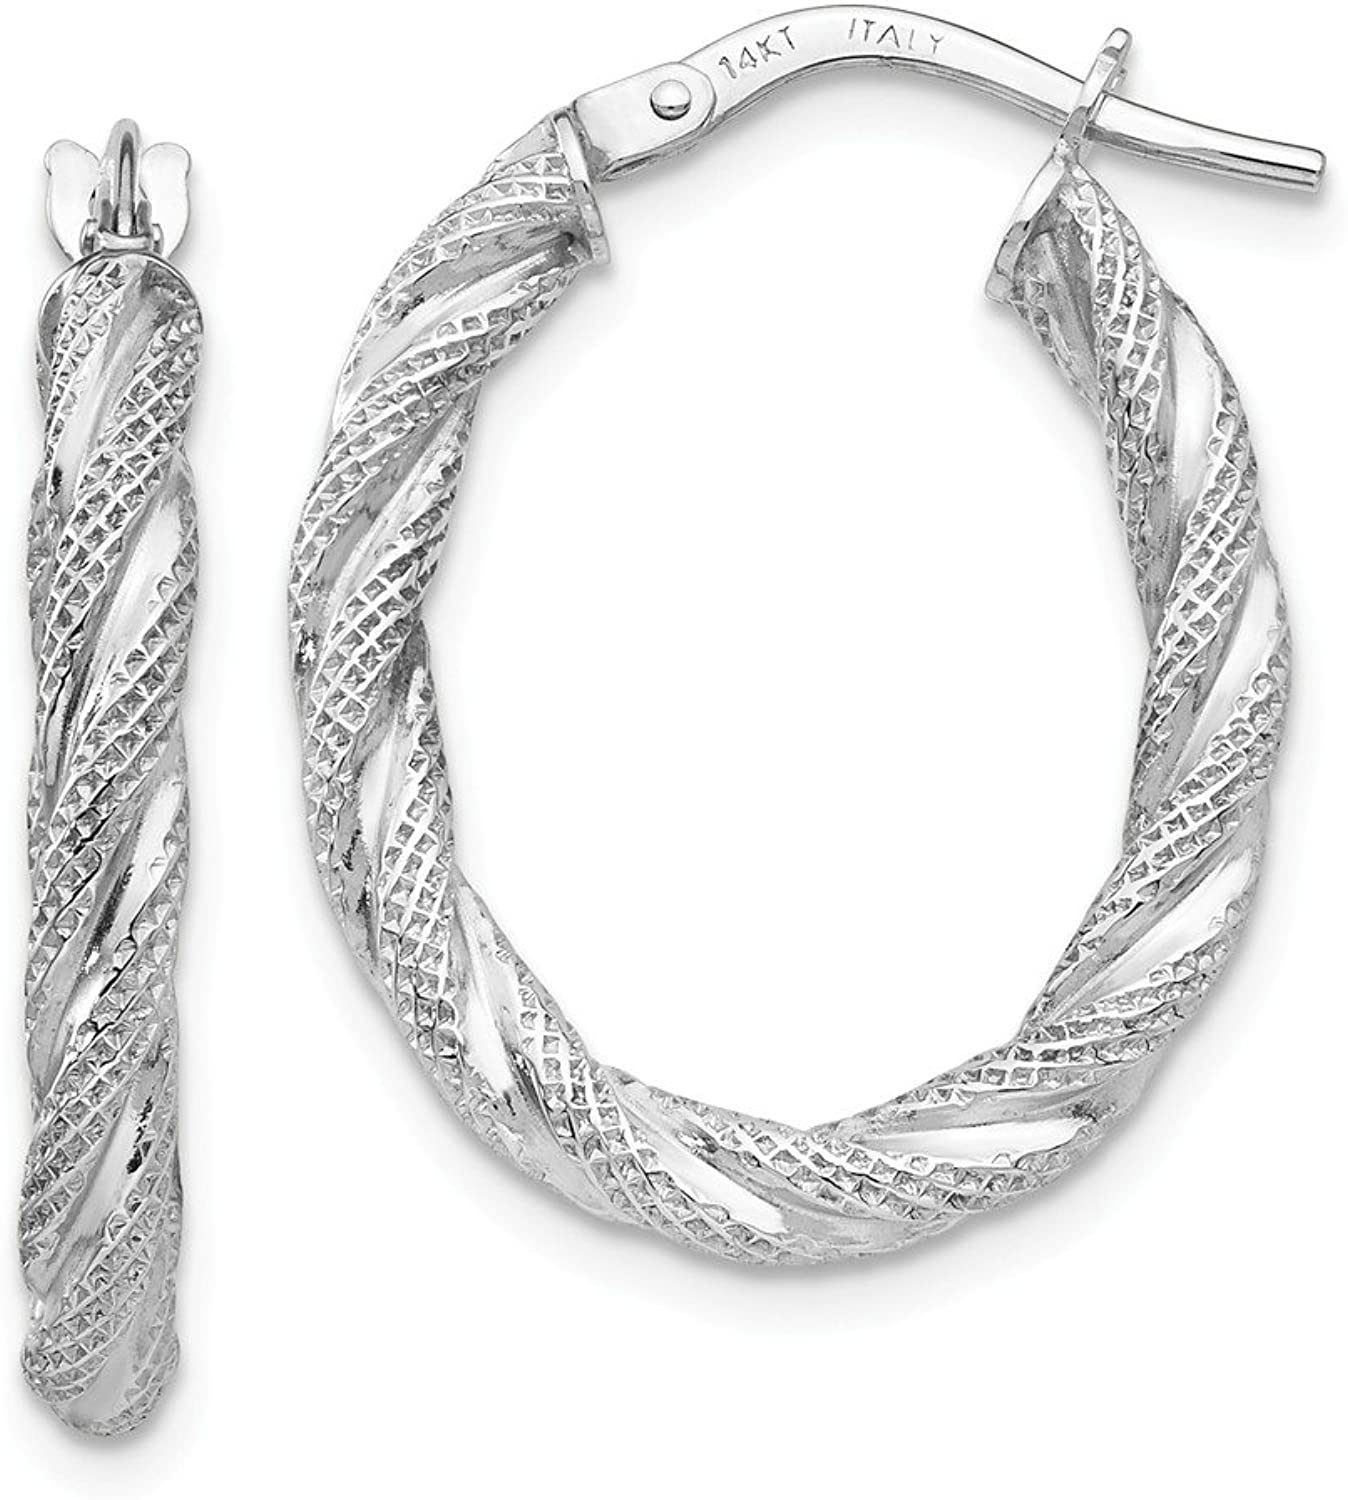 Beautiful White gold 14K 14K White gold Twisted Textured Oval Hoop Earrings